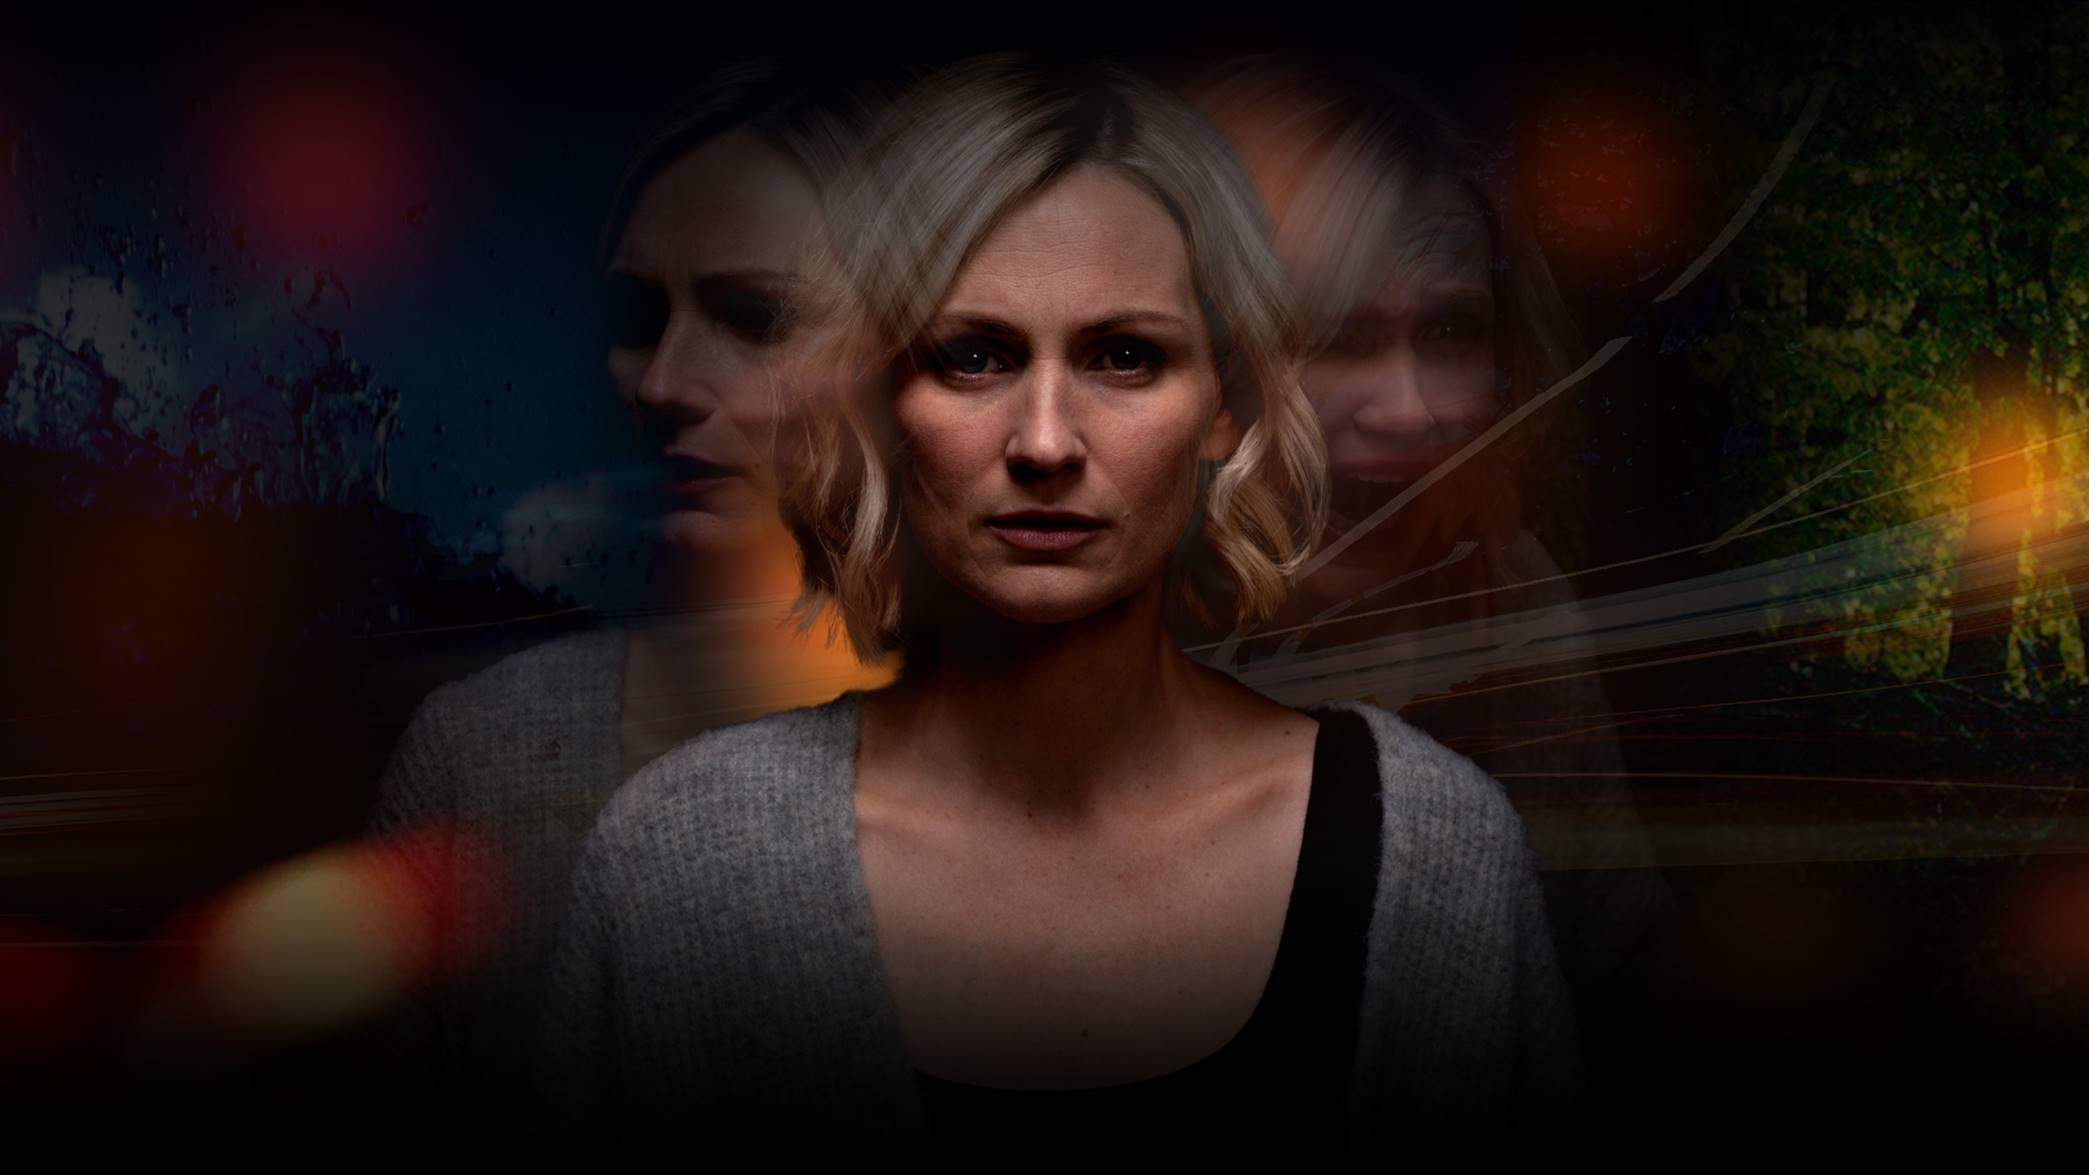 Passion Distribution secures international rights to new drama series 'bregus / fragile'